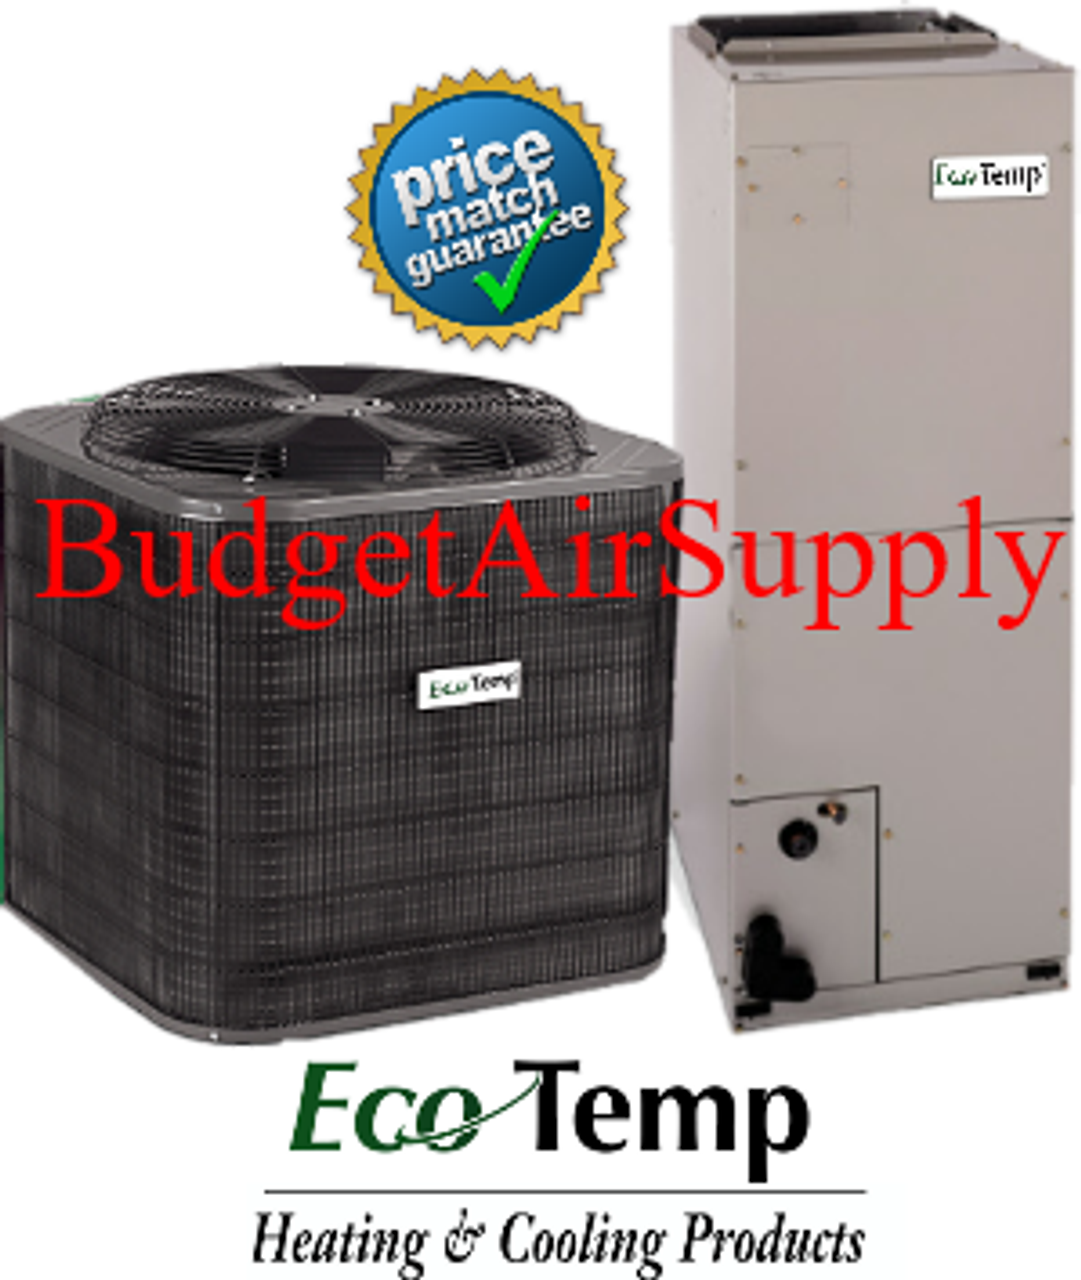 2 ton 14 seer EcoTemp A/C Split System Mobile Home Approved Mobile Home Upflow Hvac Units on hvac package units, ceiling mounted hvac units, horizontal hvac units, goodman hvac units,